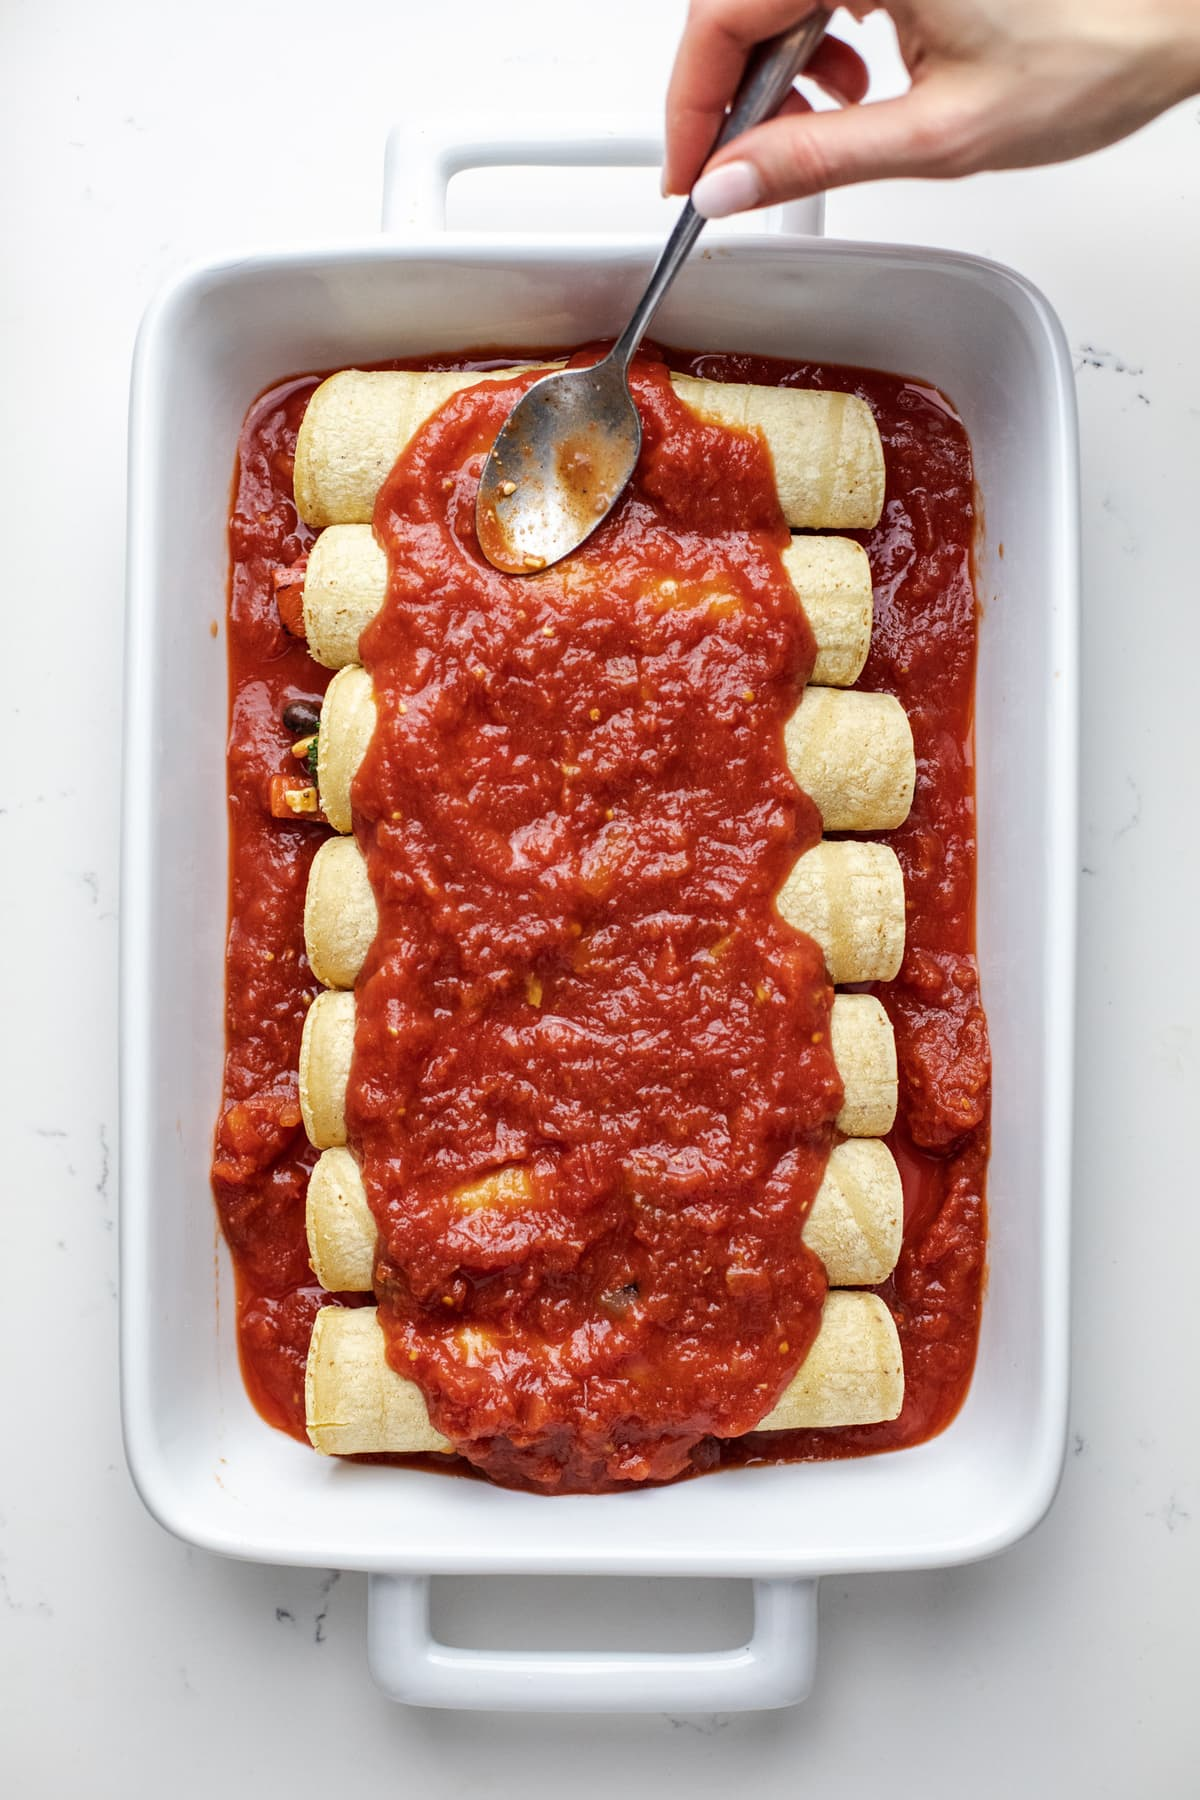 Enchiladas in a white dish with red sauce over top.